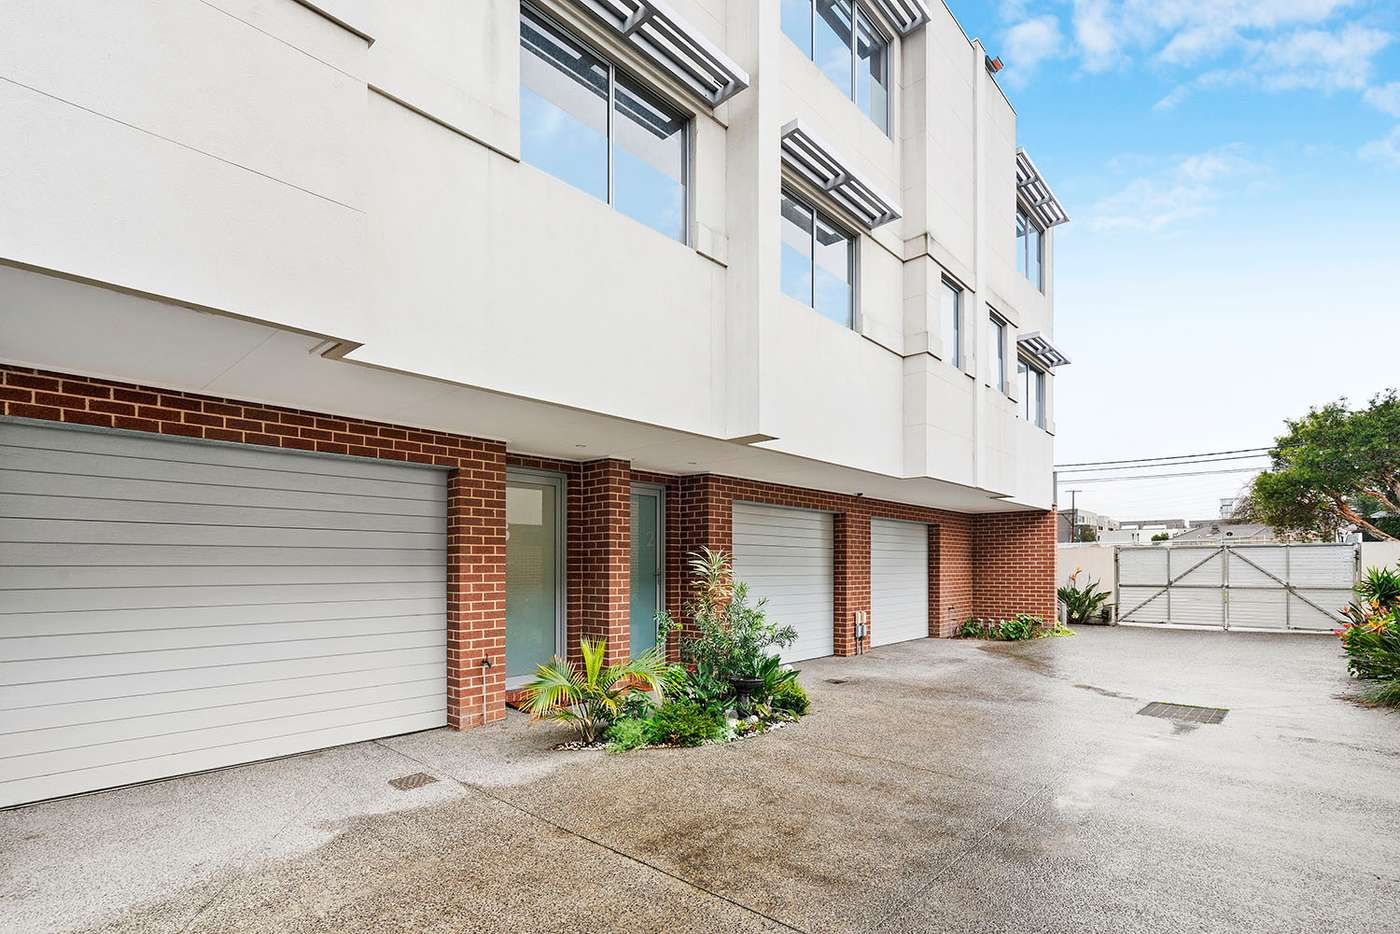 Main view of Homely townhouse listing, 3/4 Blagdon Street, Cheltenham VIC 3192